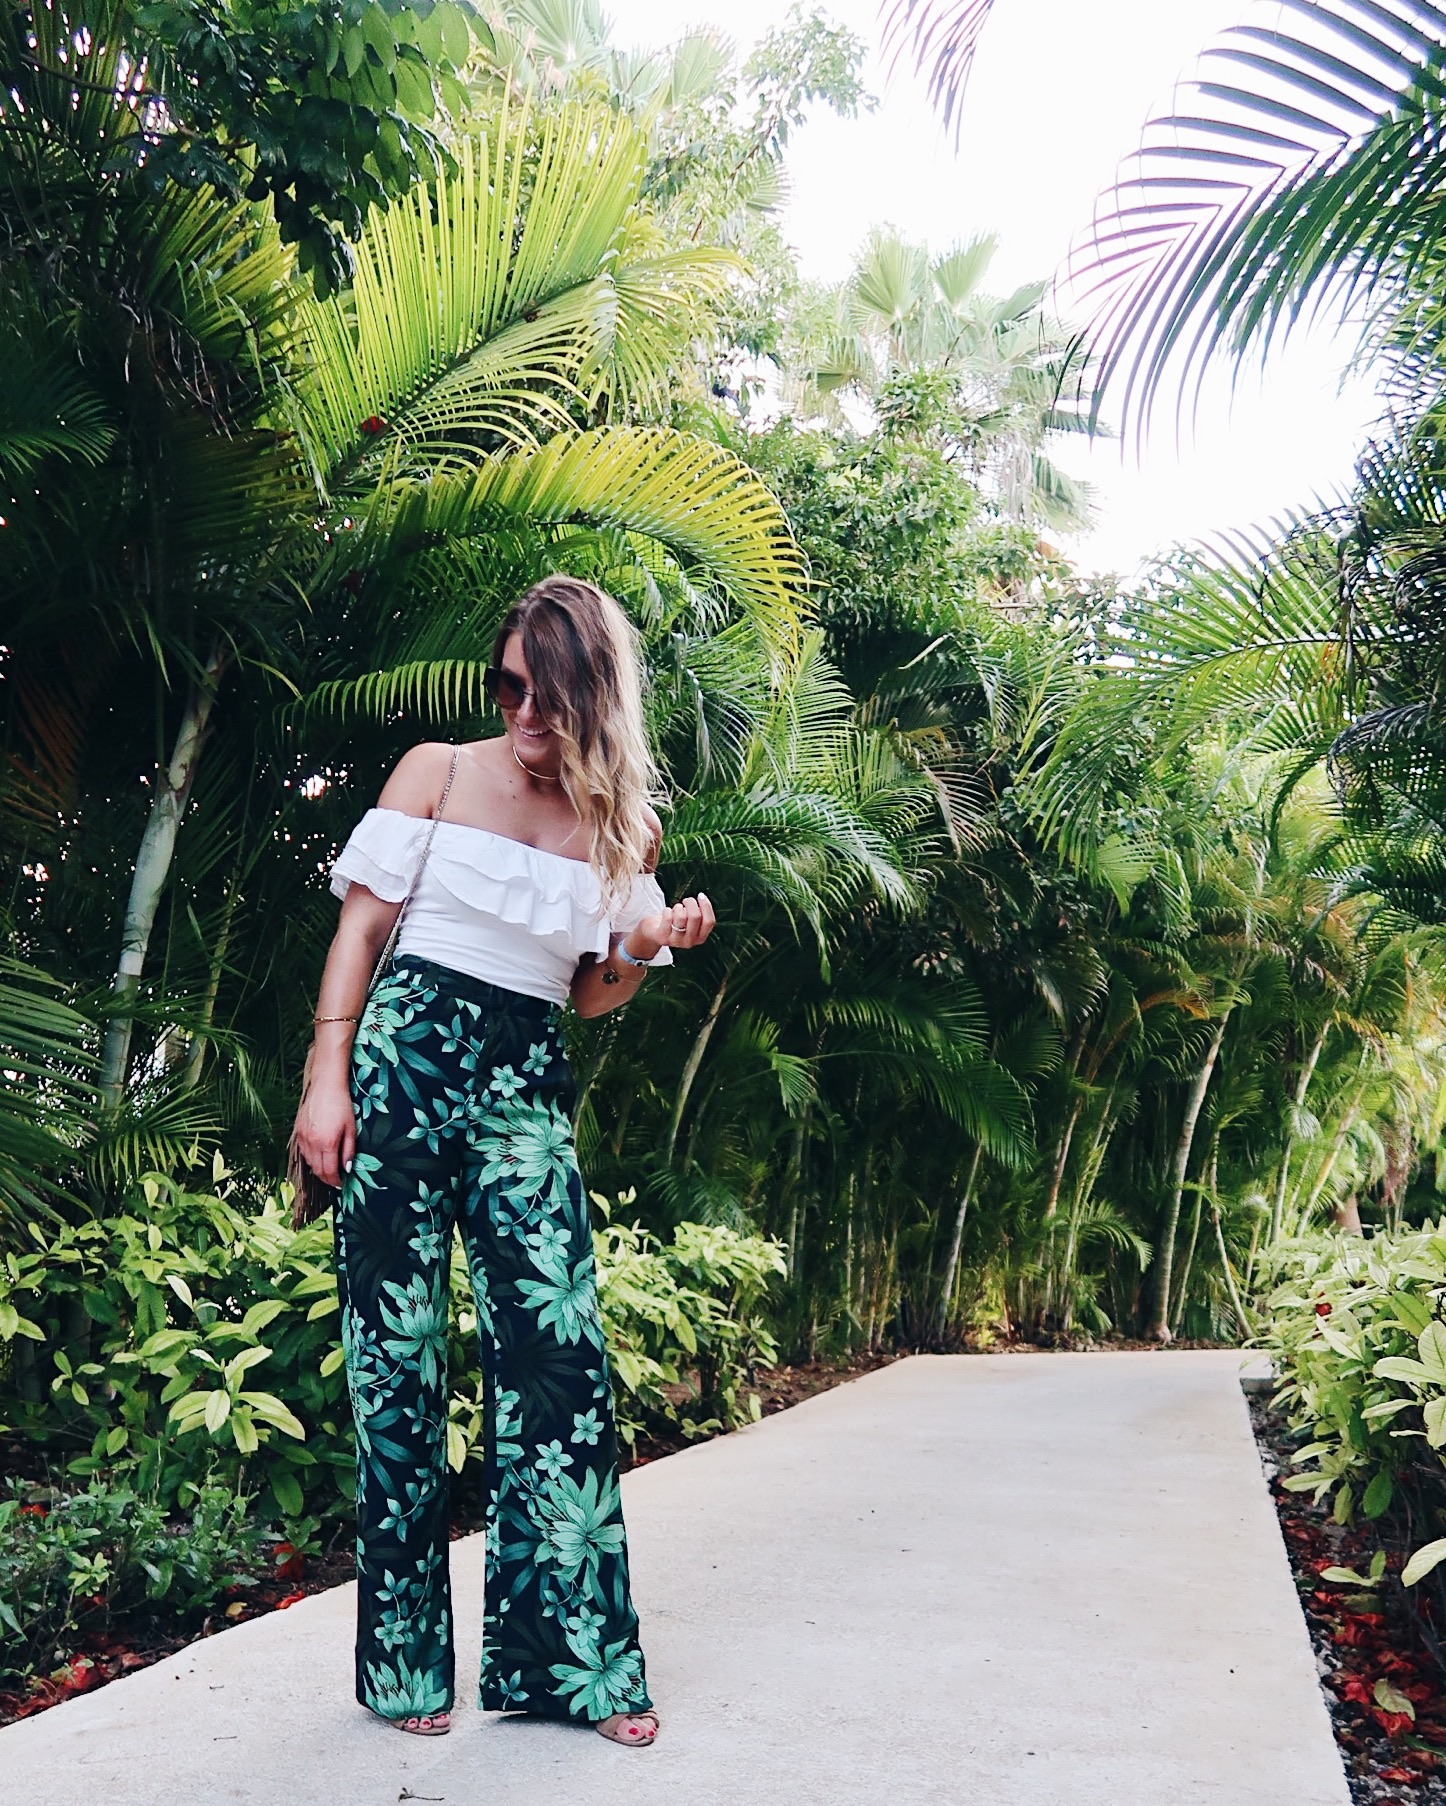 life with aco, Amanda conquer, vacation style outfit, palm print pants, off shoulder top